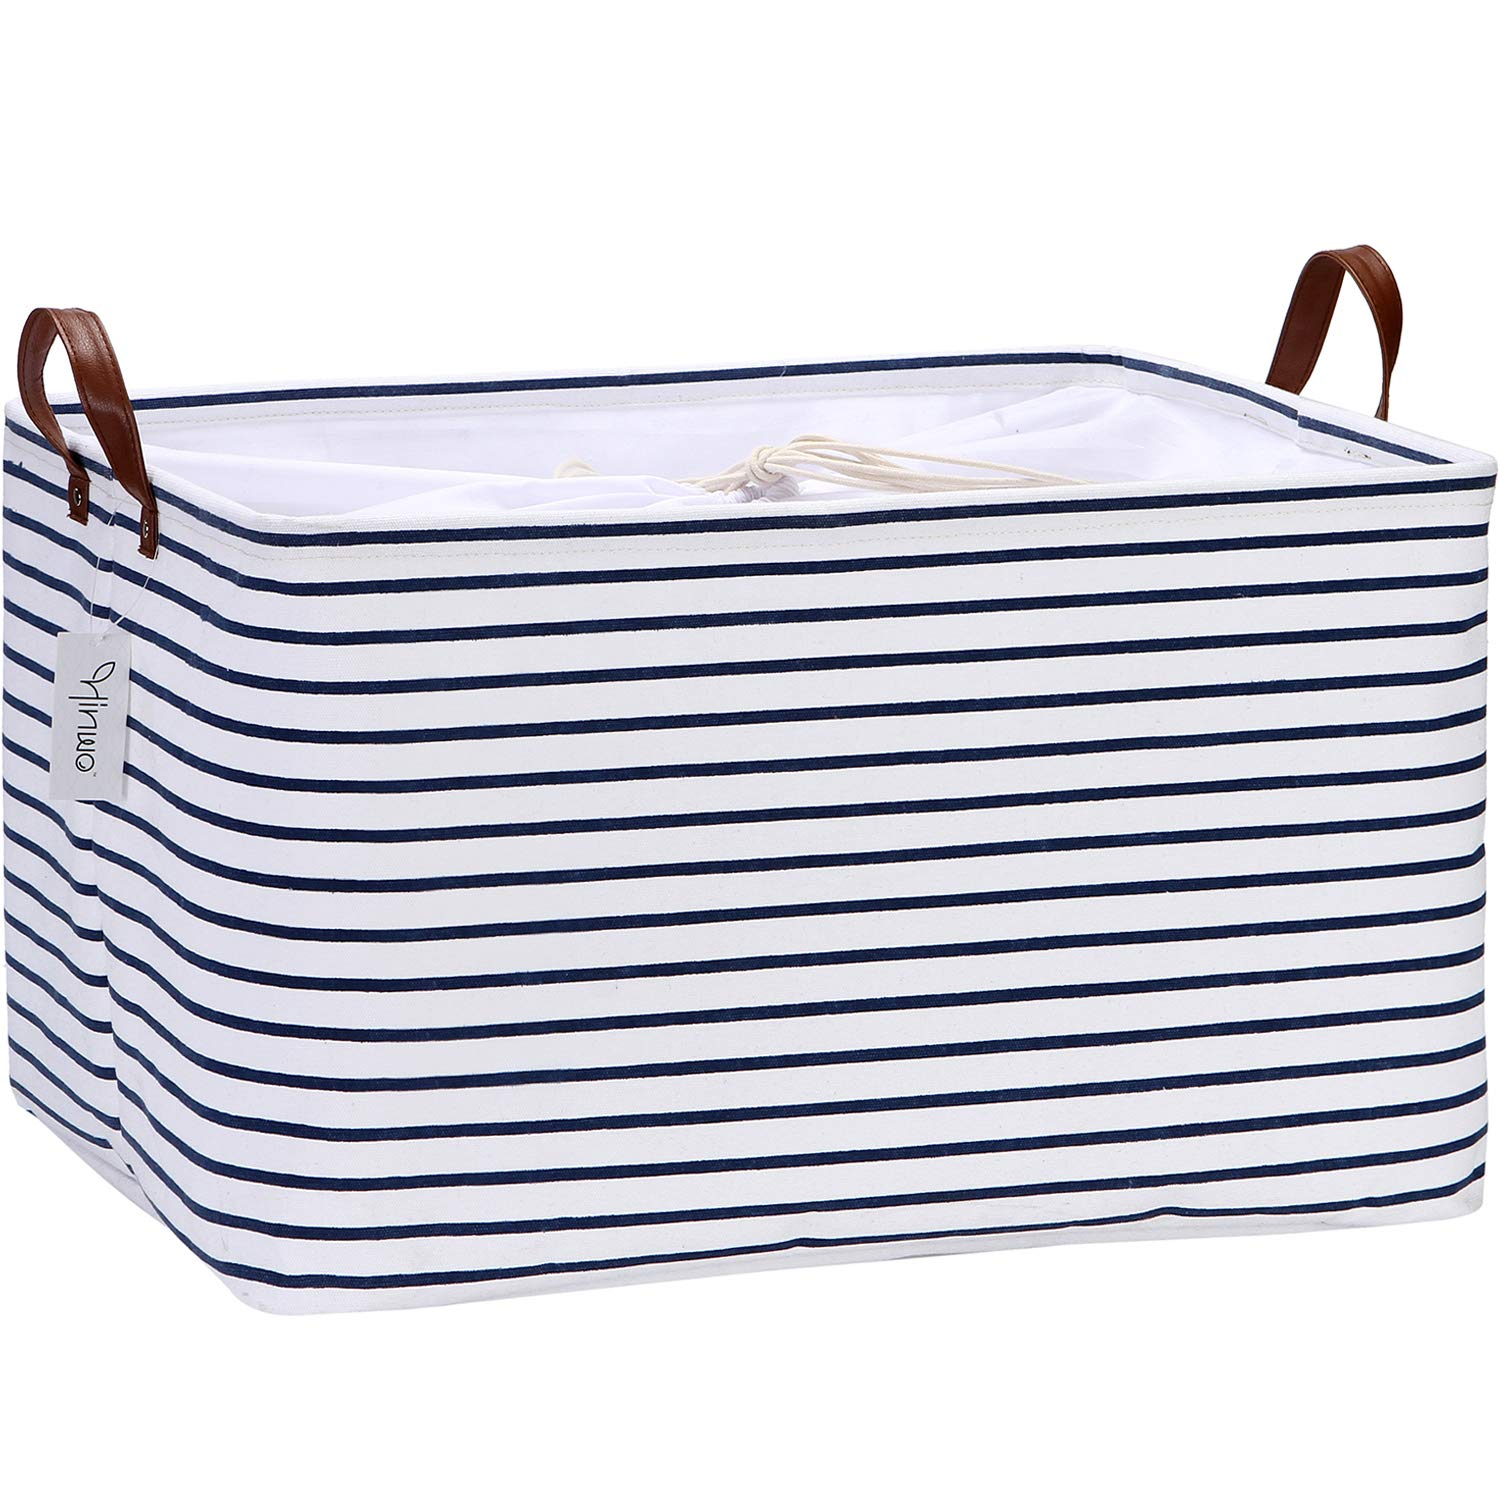 Hinwo 70L Extra Large Capacity Storage Basket Canvas Fabric Storage Bin Collapsible Storage Box with PU Leather Handles and Drawstring Closure, 22 by 15 inches, Waterproof Inner Layer, Navy Stripe